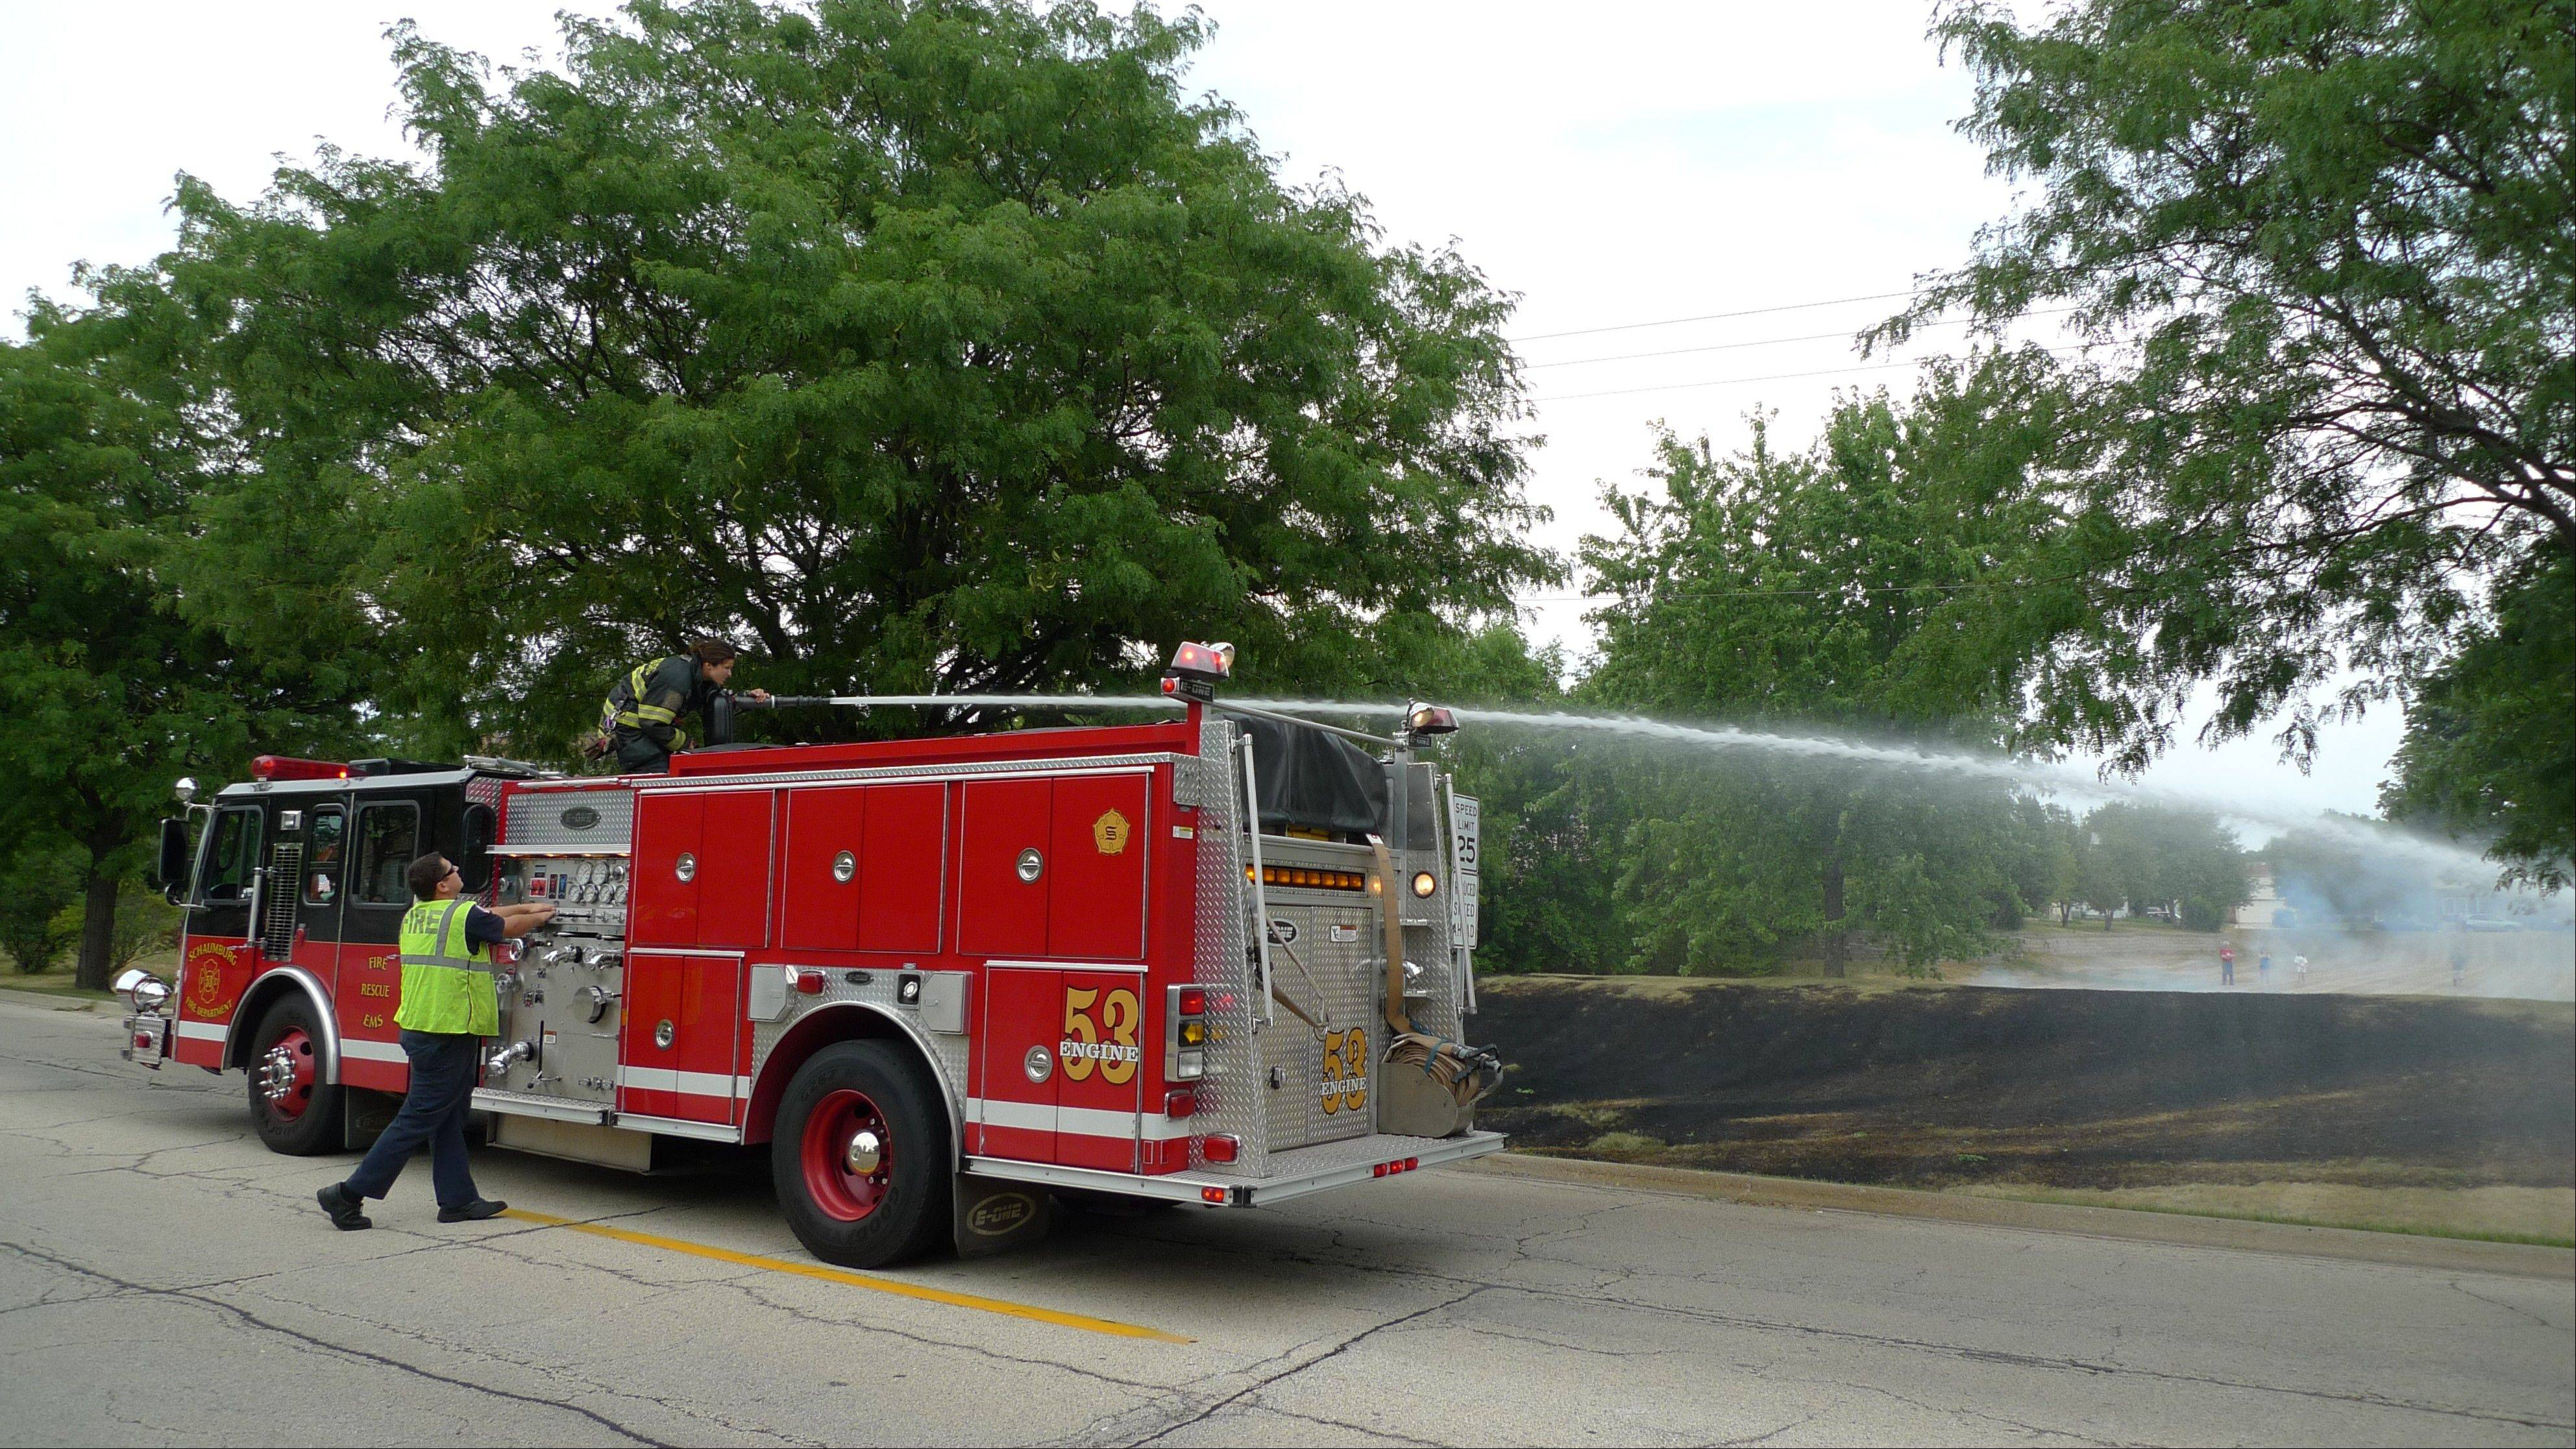 The Hoffman Estates Fire Department has been awarded $164,960 through the Department of Homeland Security's Assistance to Firefighters grant program to help pay for operations and safety.